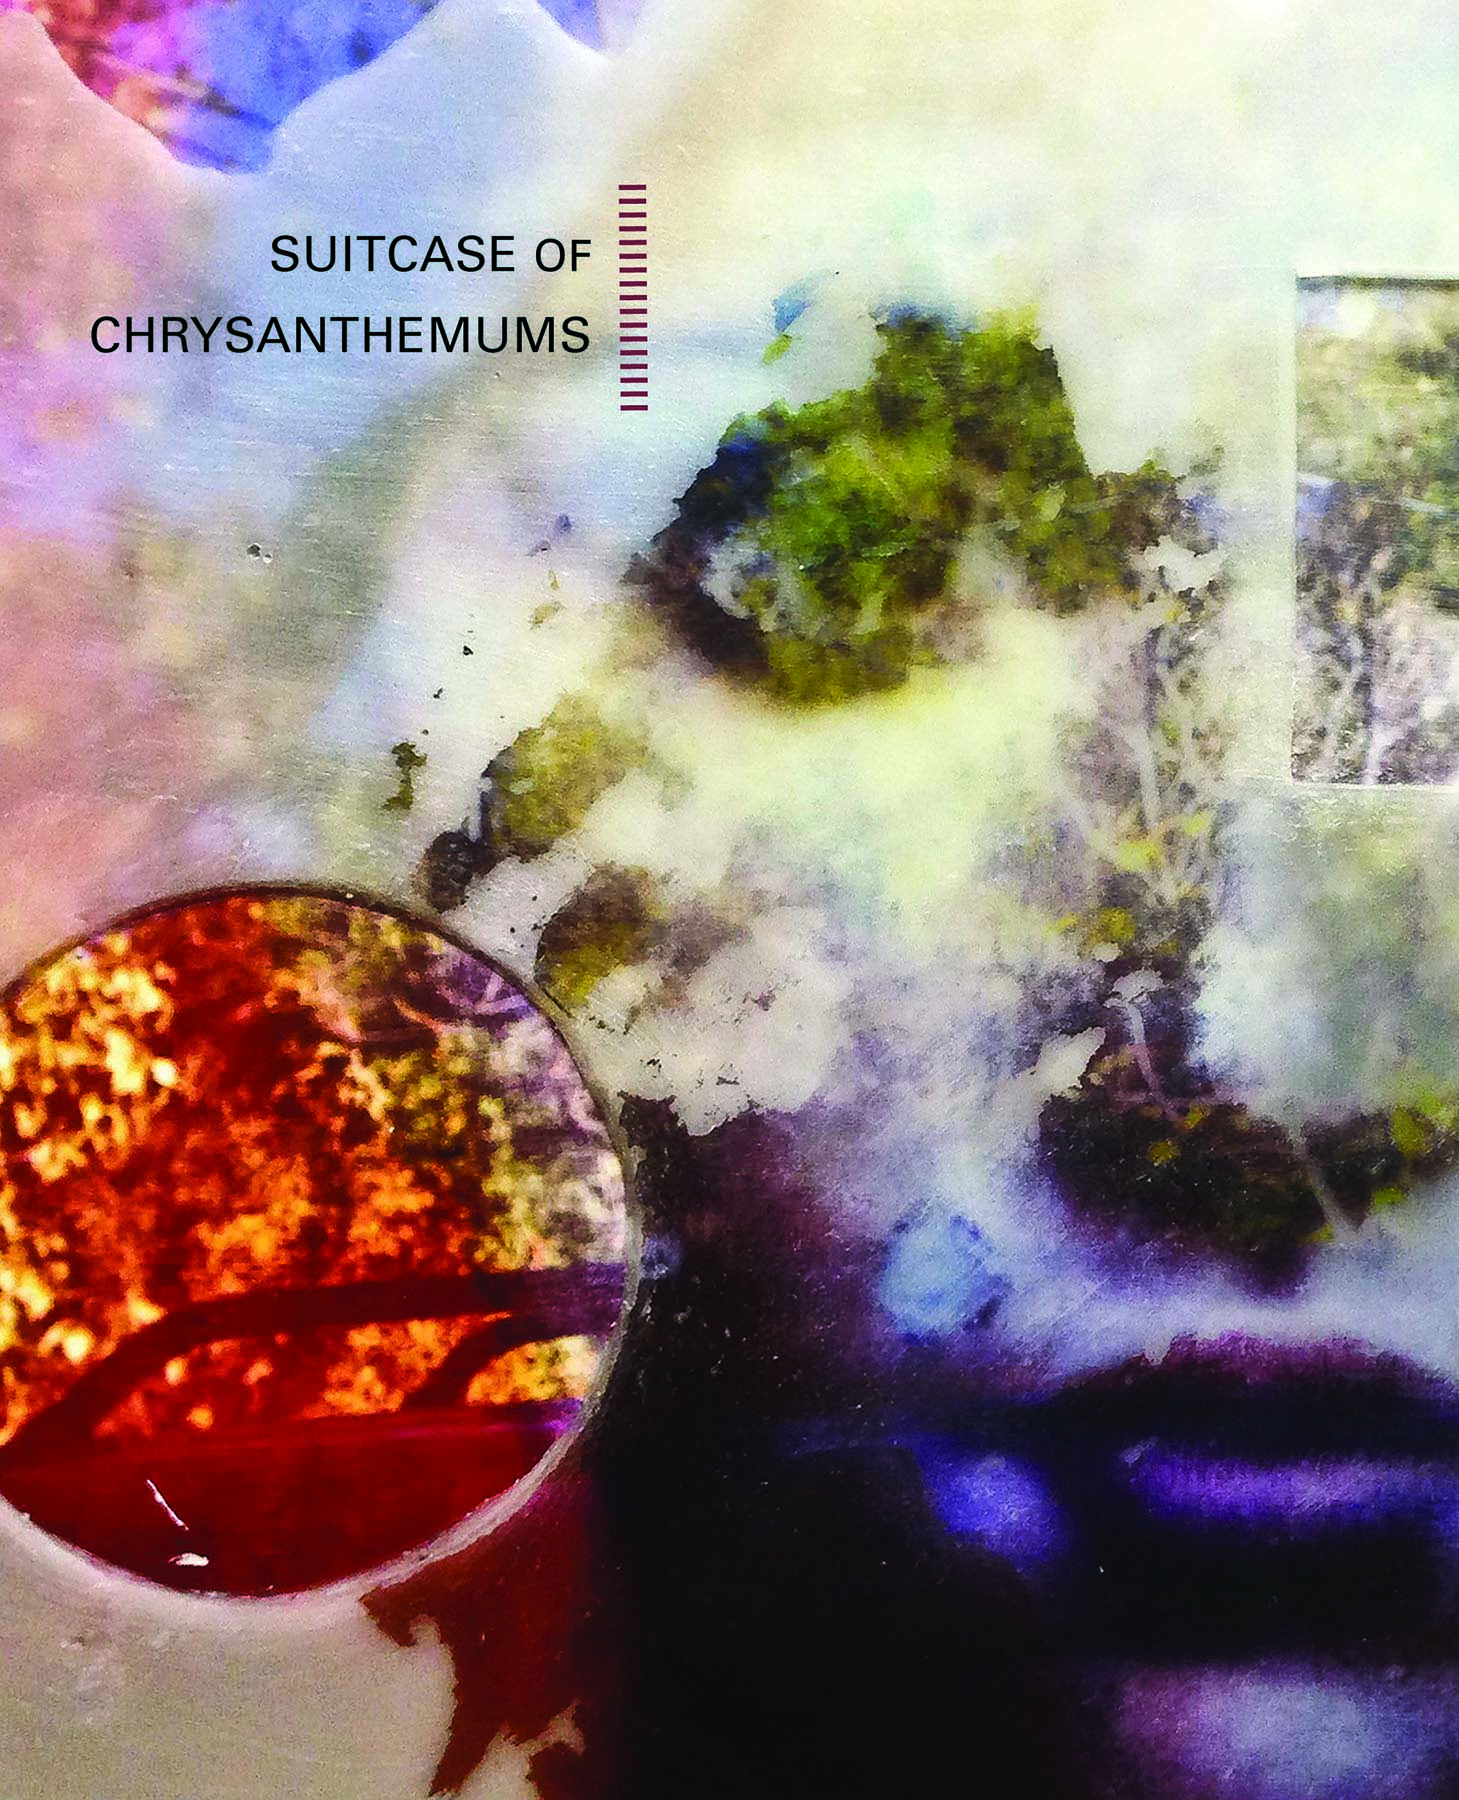 Suitcase of Chrysanthemums front cover small.jpg